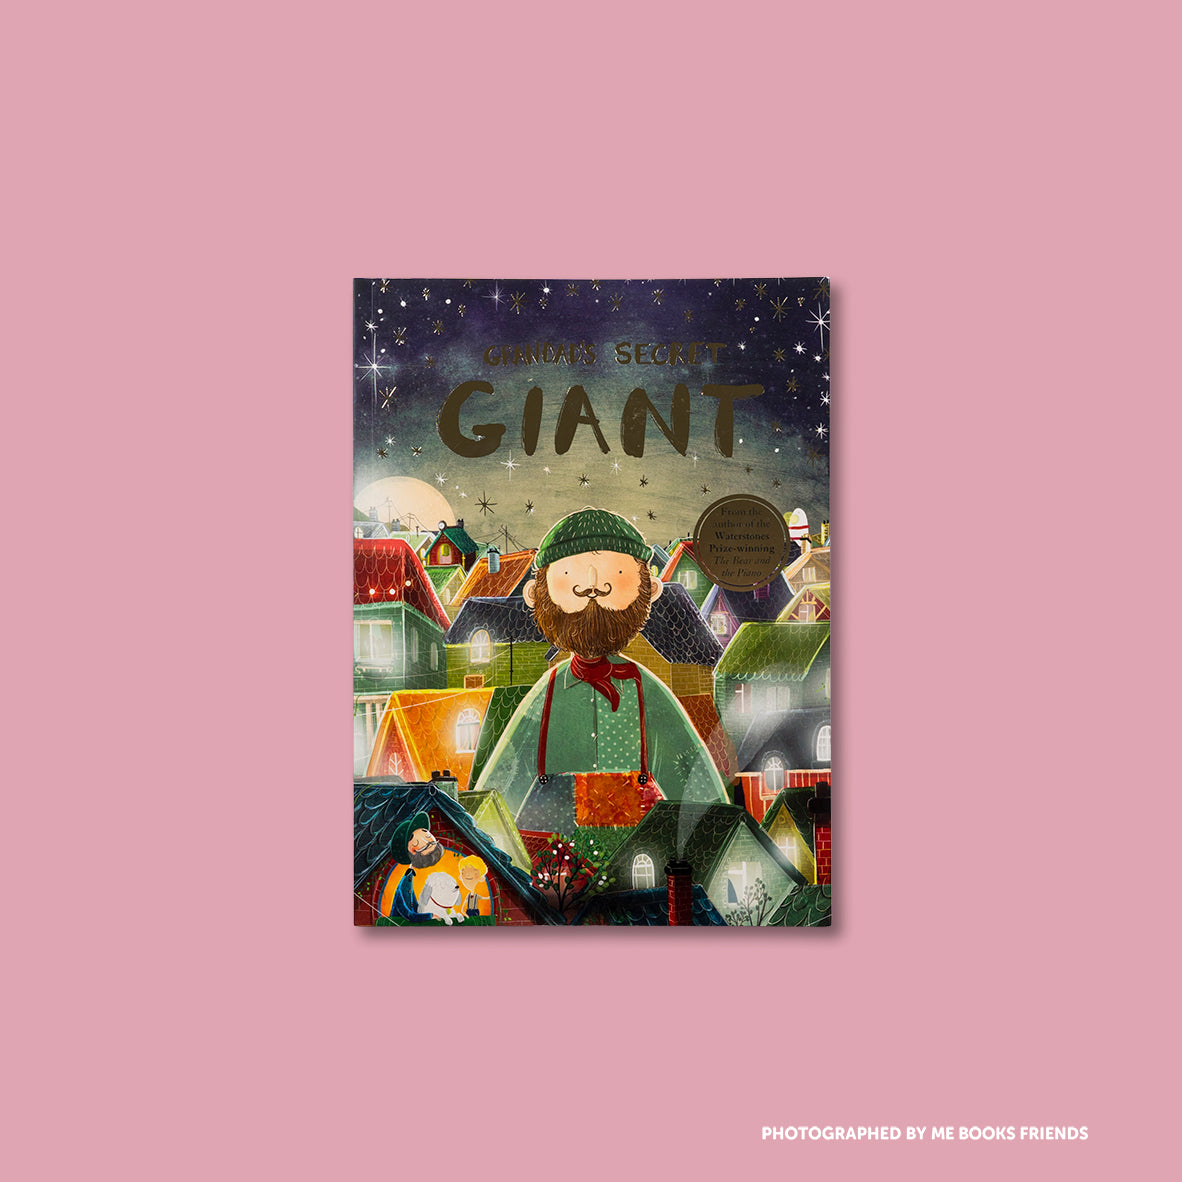 Grandad's Secret Giant - 9781847808486